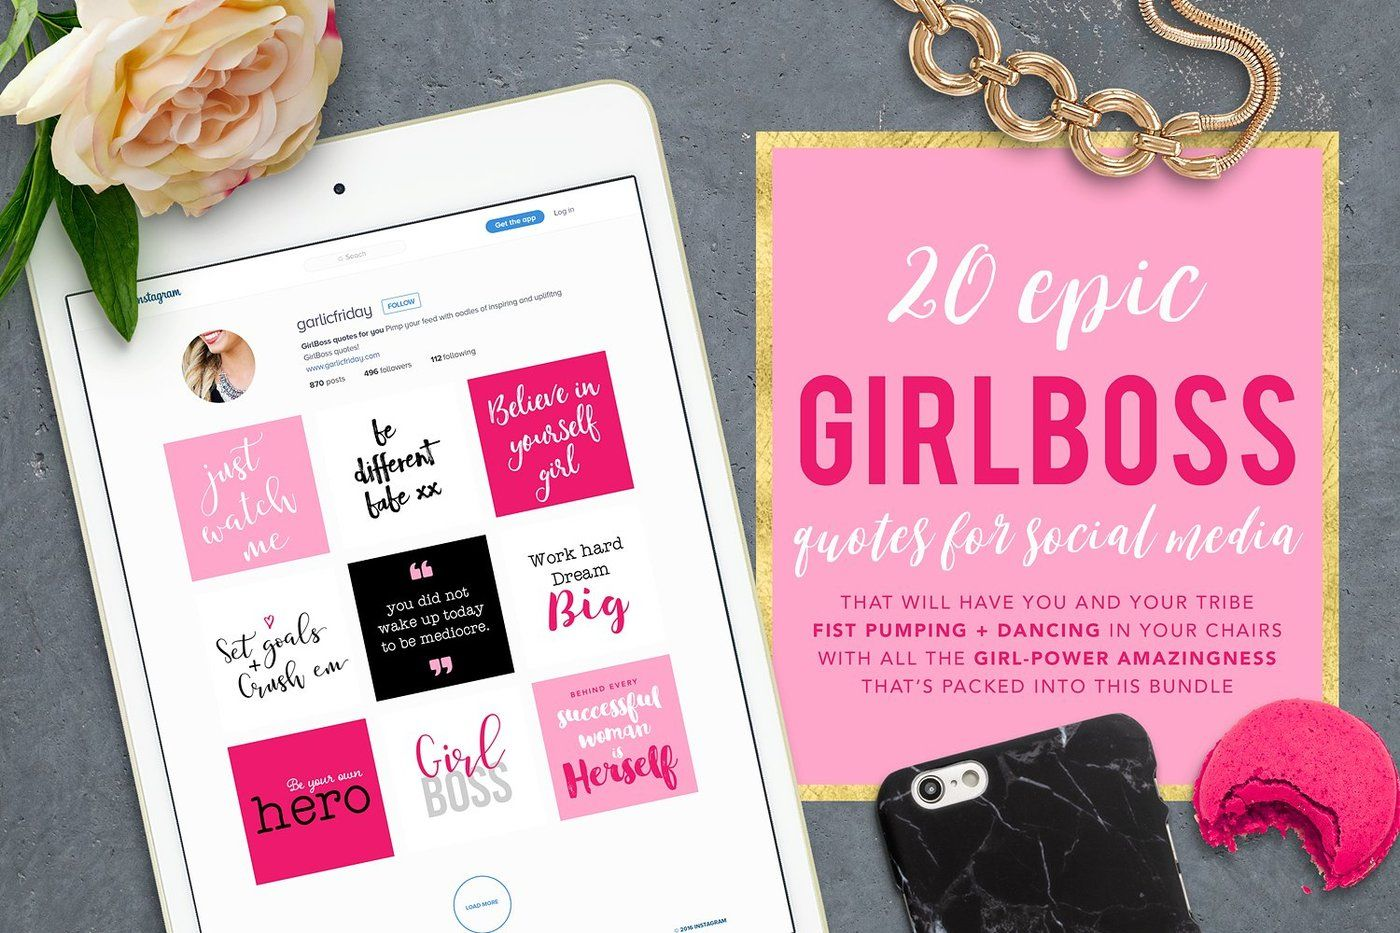 The Epic Girl Boss Instagram Bundle By Garlic Friday Design